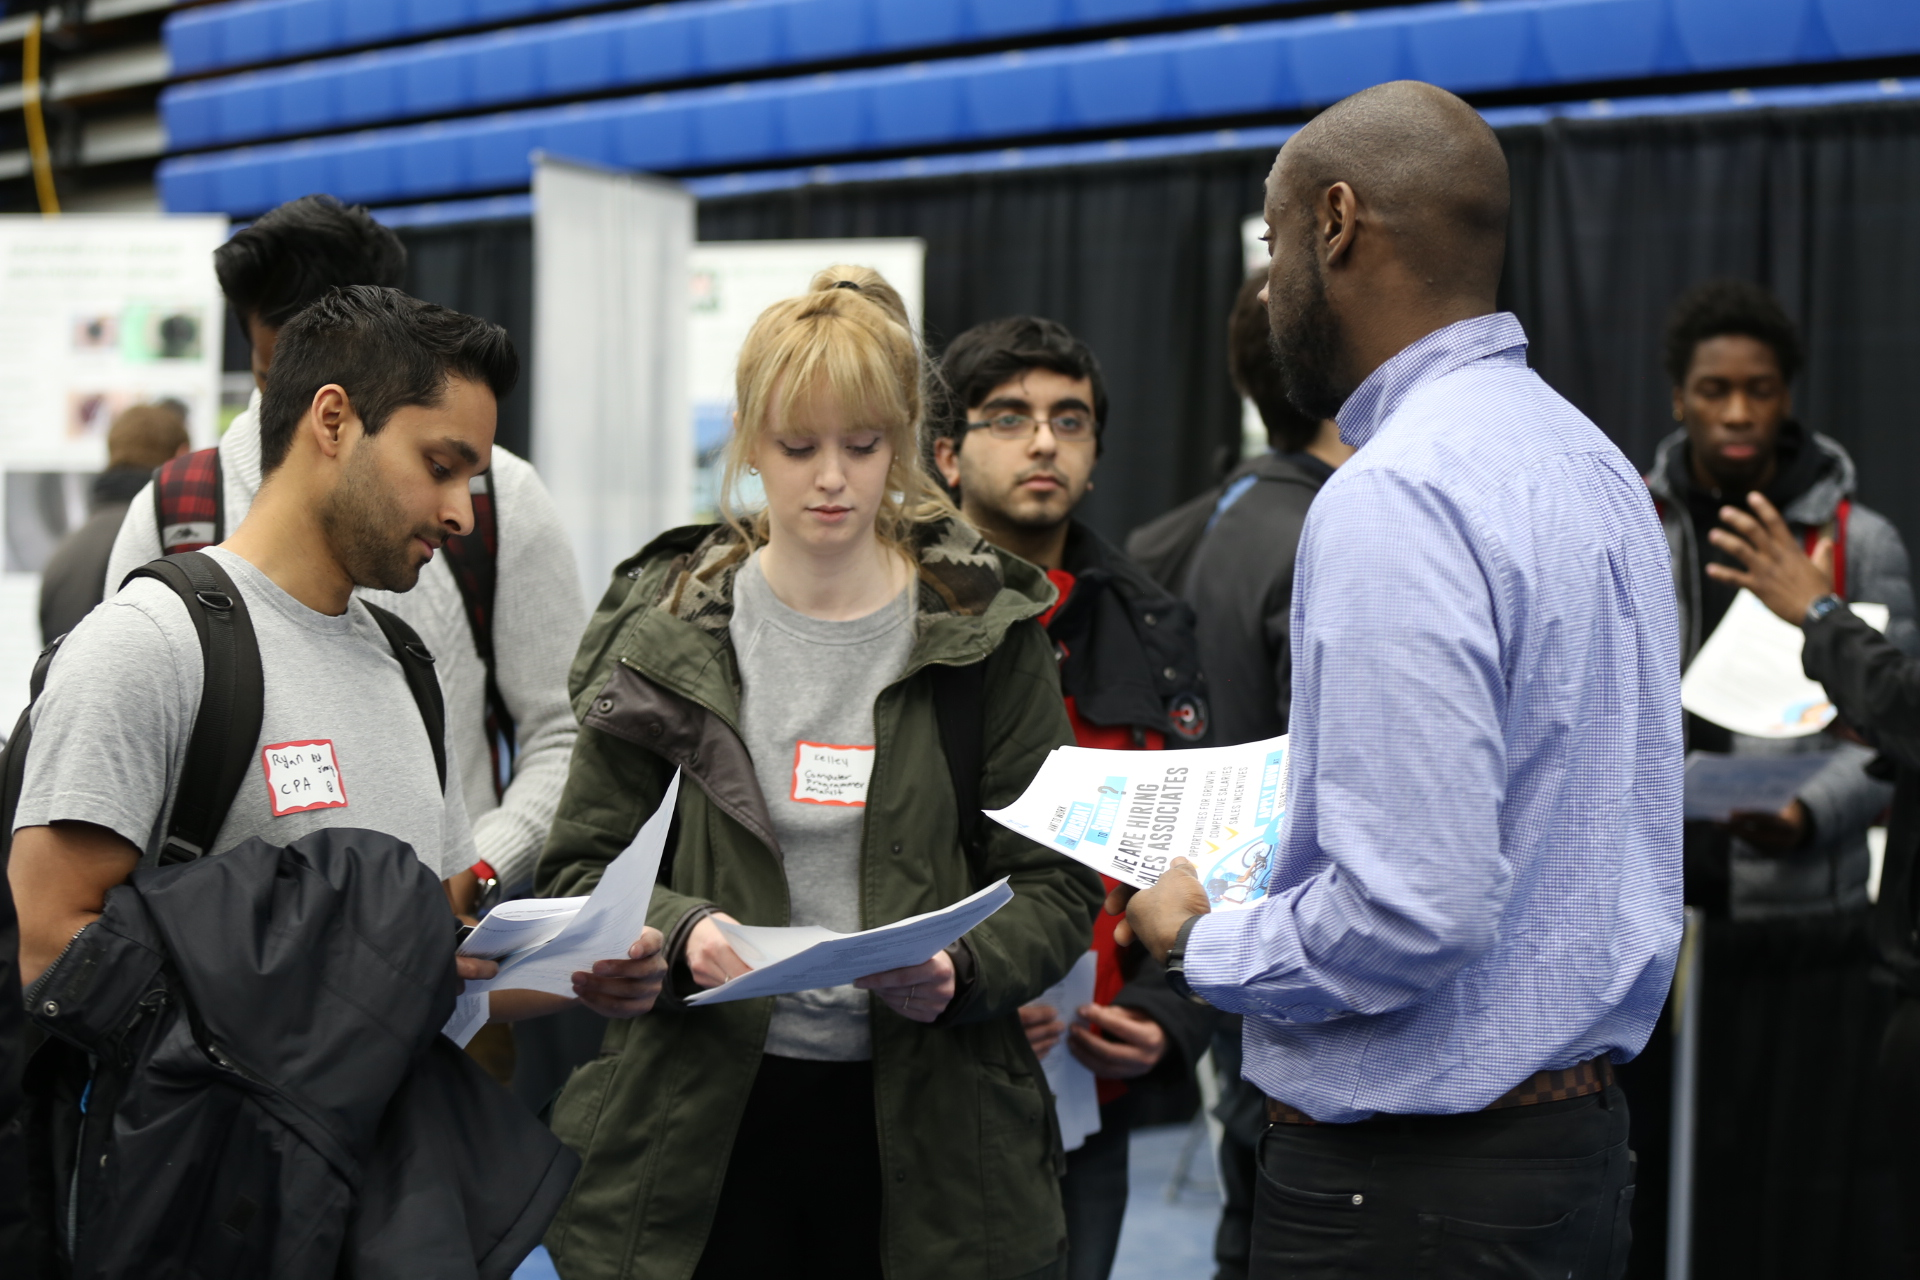 Students speaking with a representative at the career fair